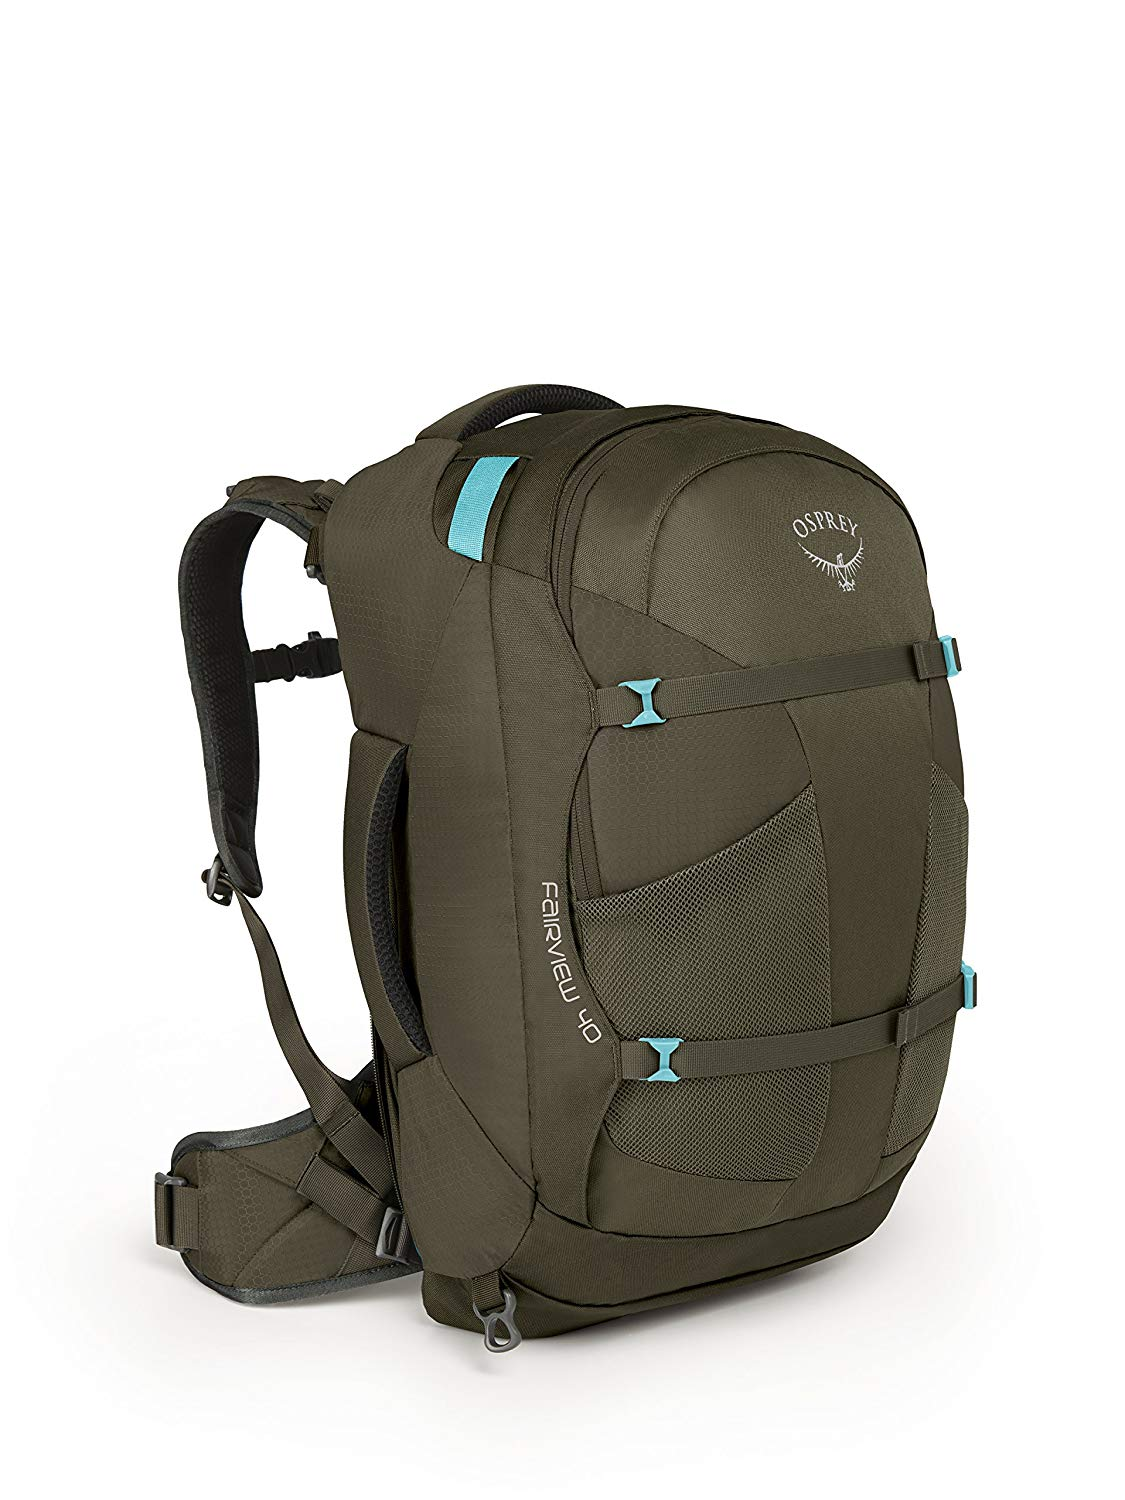 21b4f79ad078 Your DETAILED Guide to Choosing the Best Travel Backpack in 2019